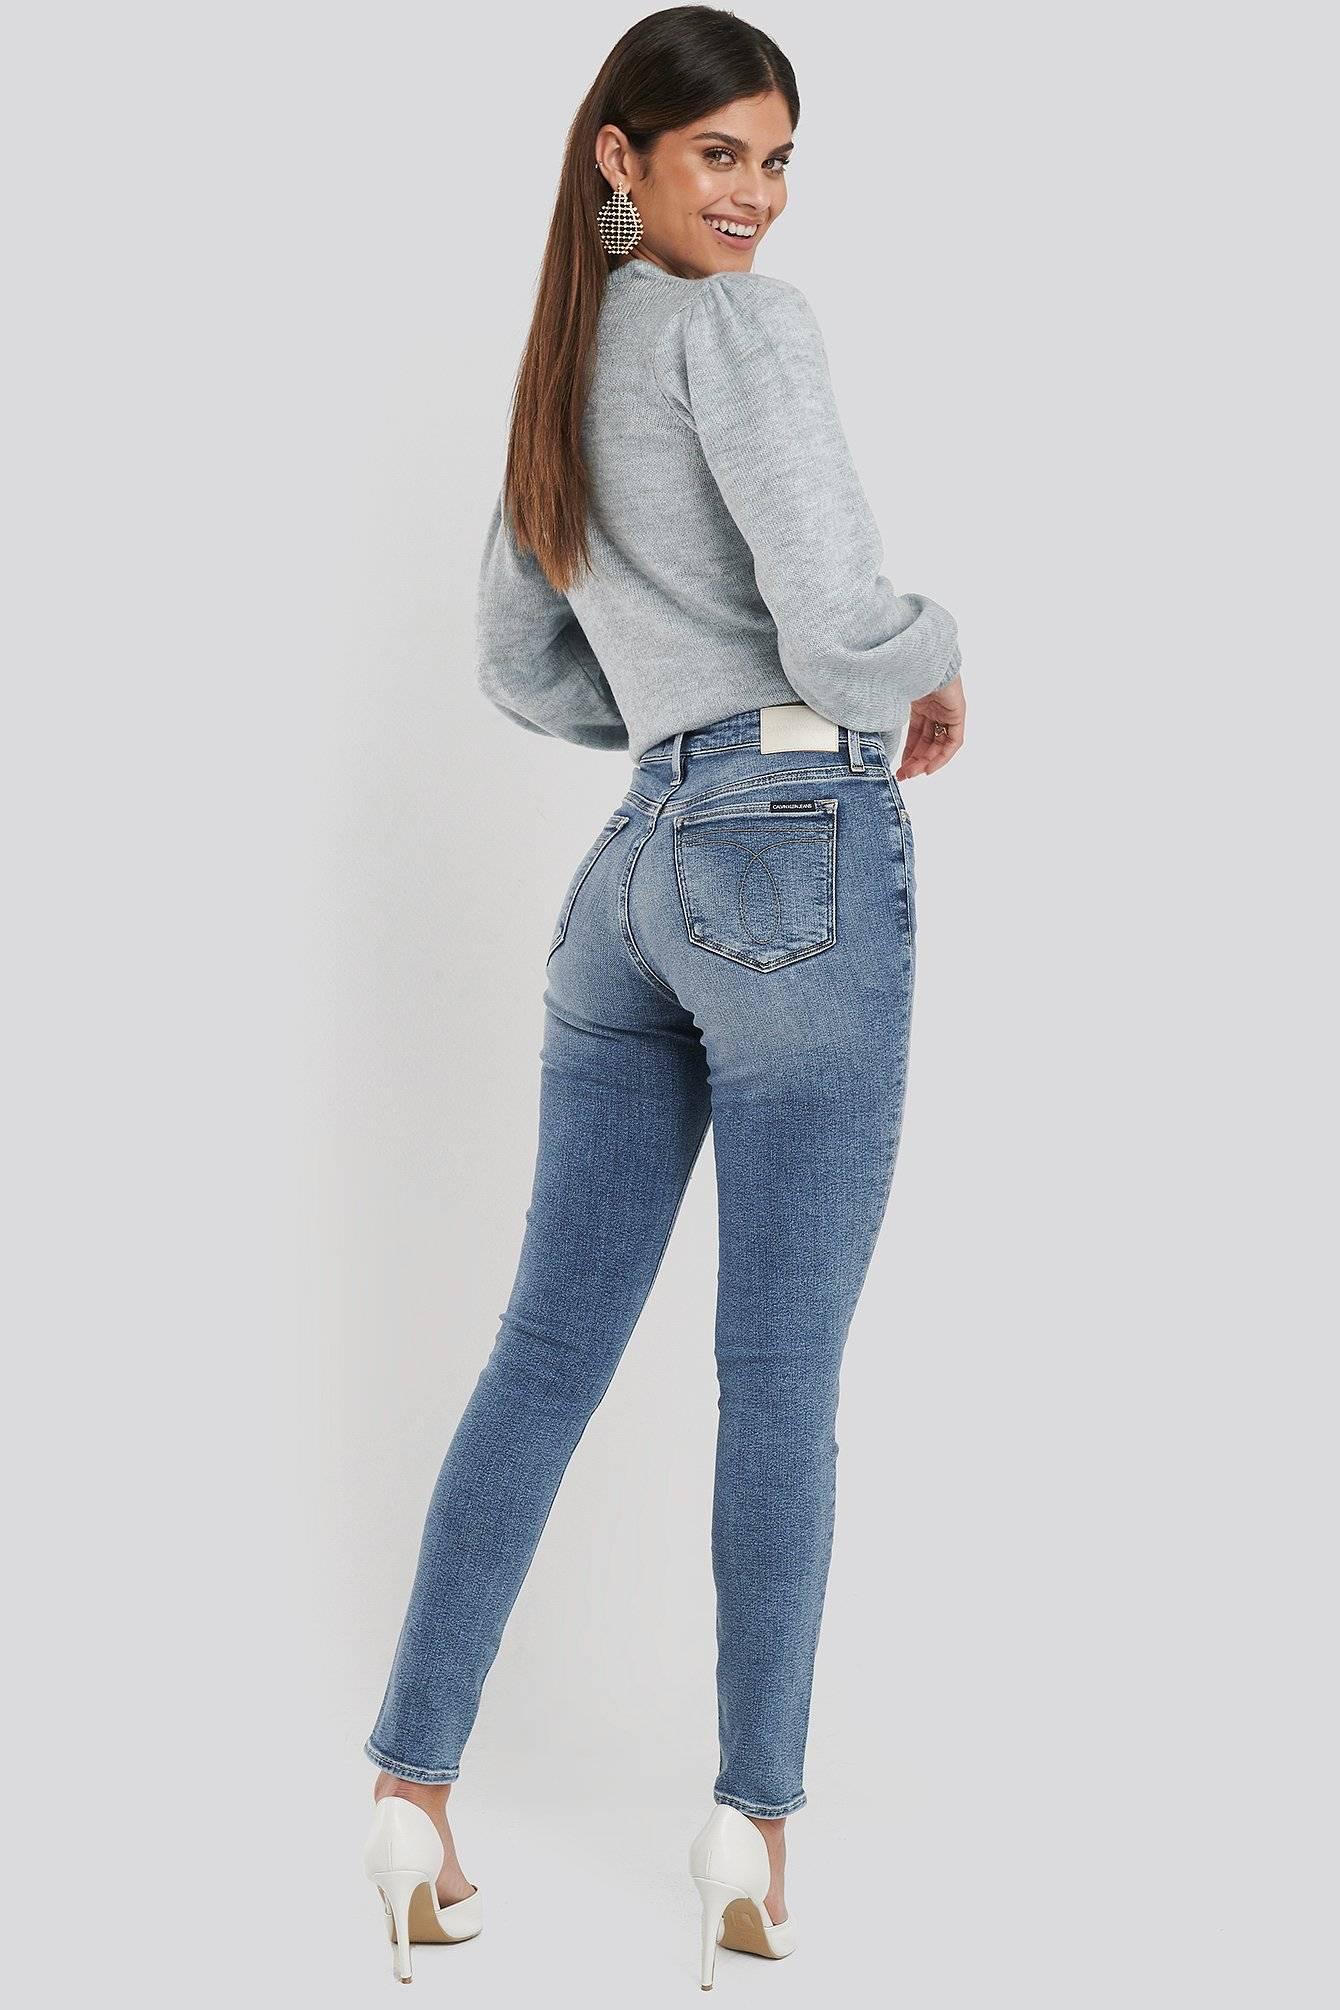 Image of Calvin Klein 010 High Rise Skinny Jeans - Blue  - Size: W24 L30,W25 L30,W26 L30,W27 L30,W28 L30,W29 L30,W